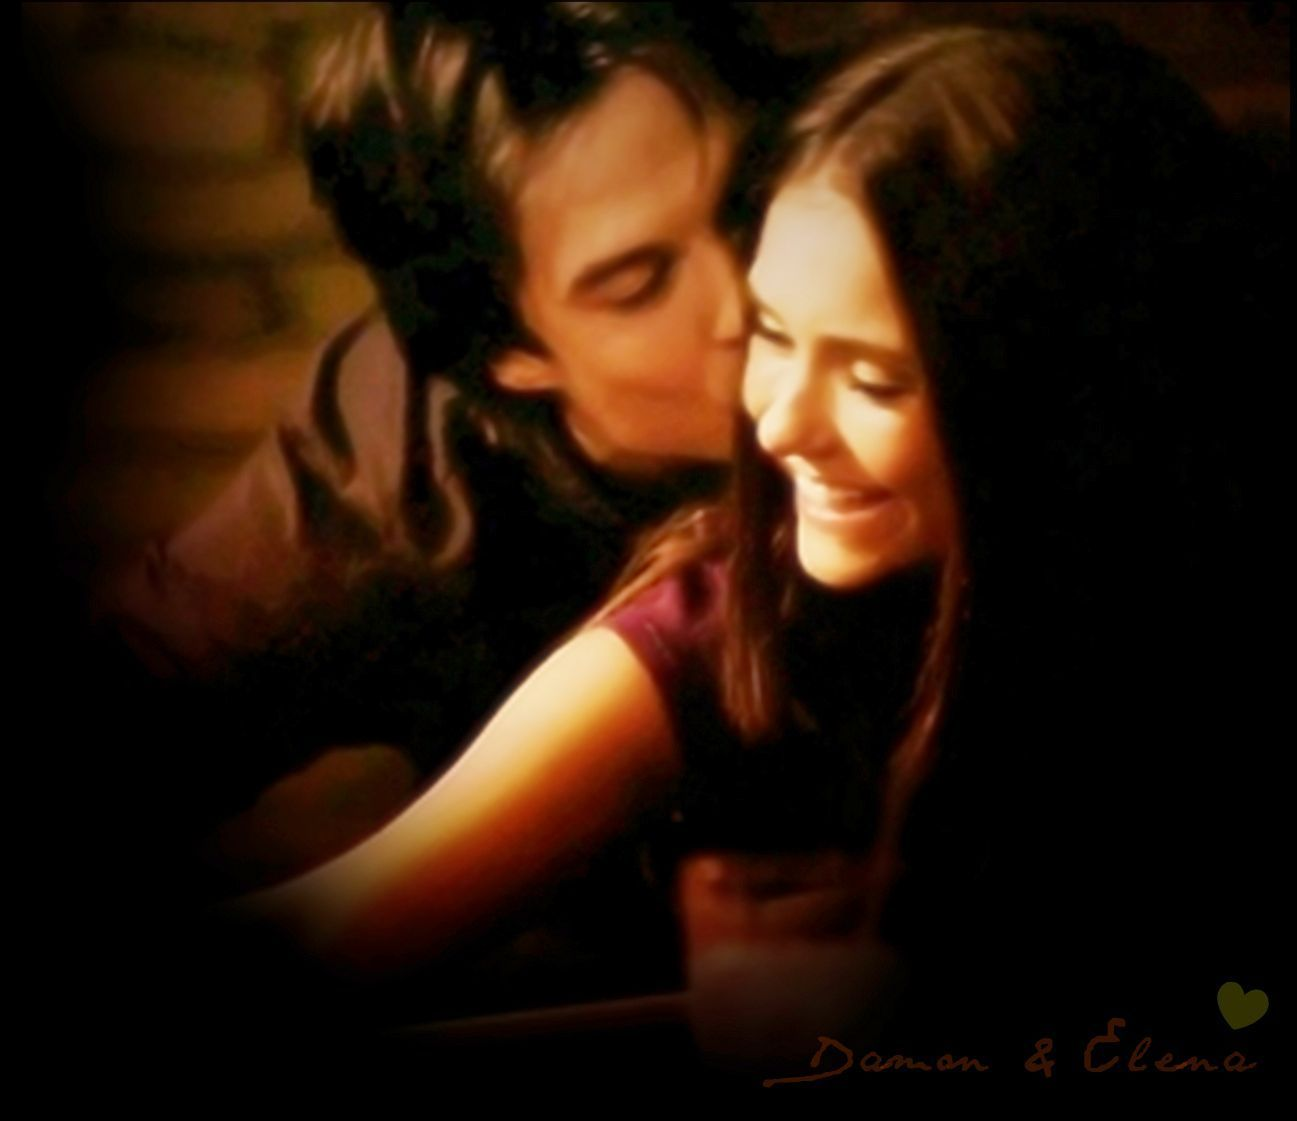 damon salvatore & elena gilbert | i will go down with this ship